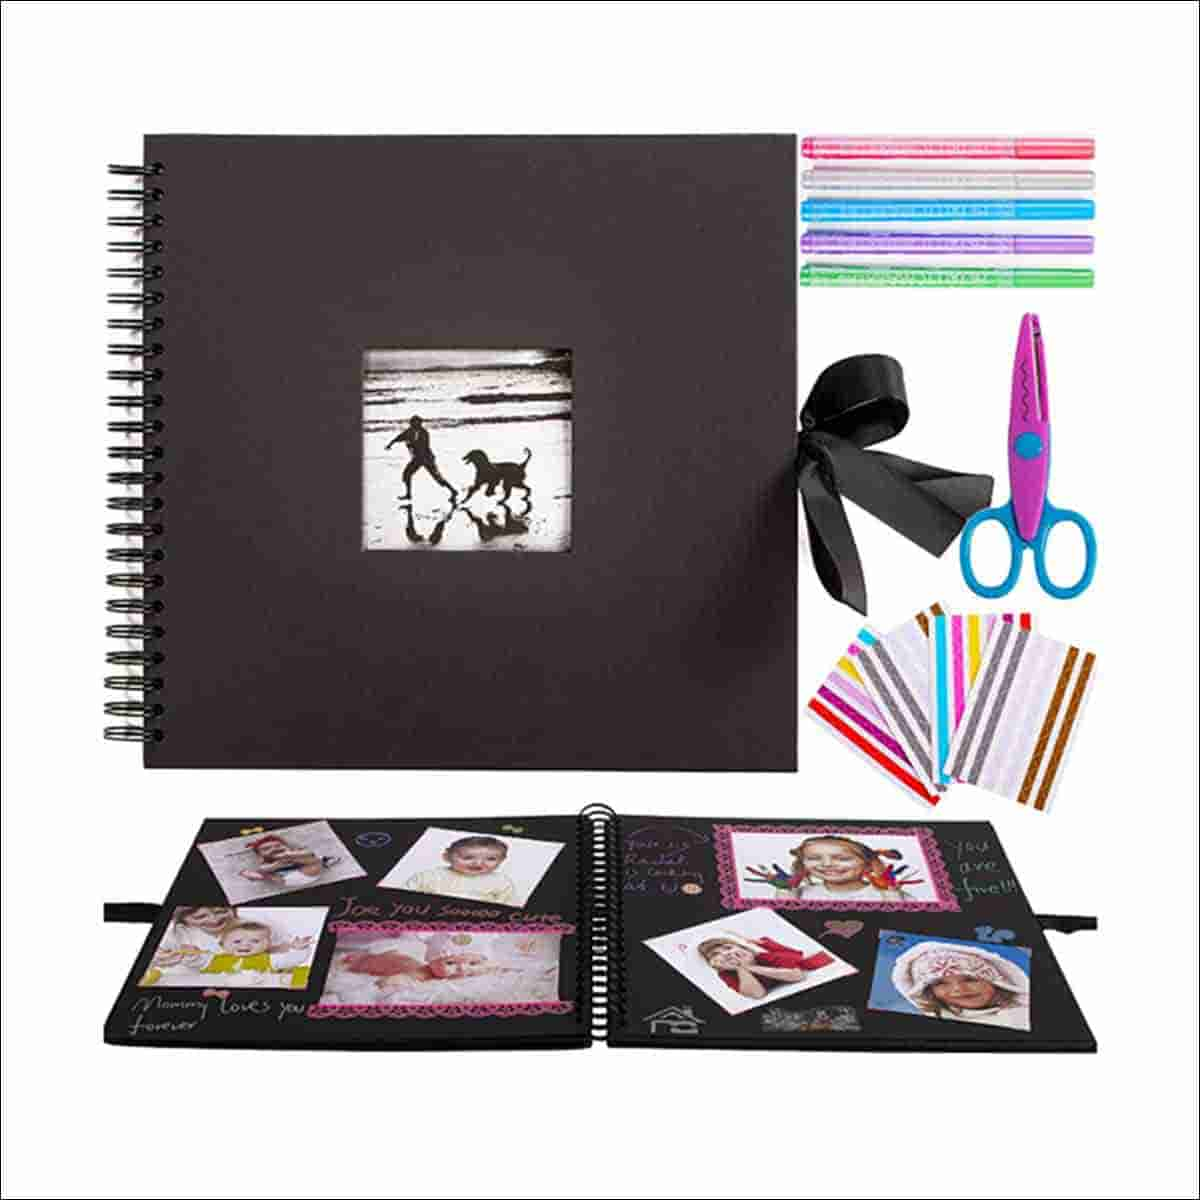 album de fotos scrapbook